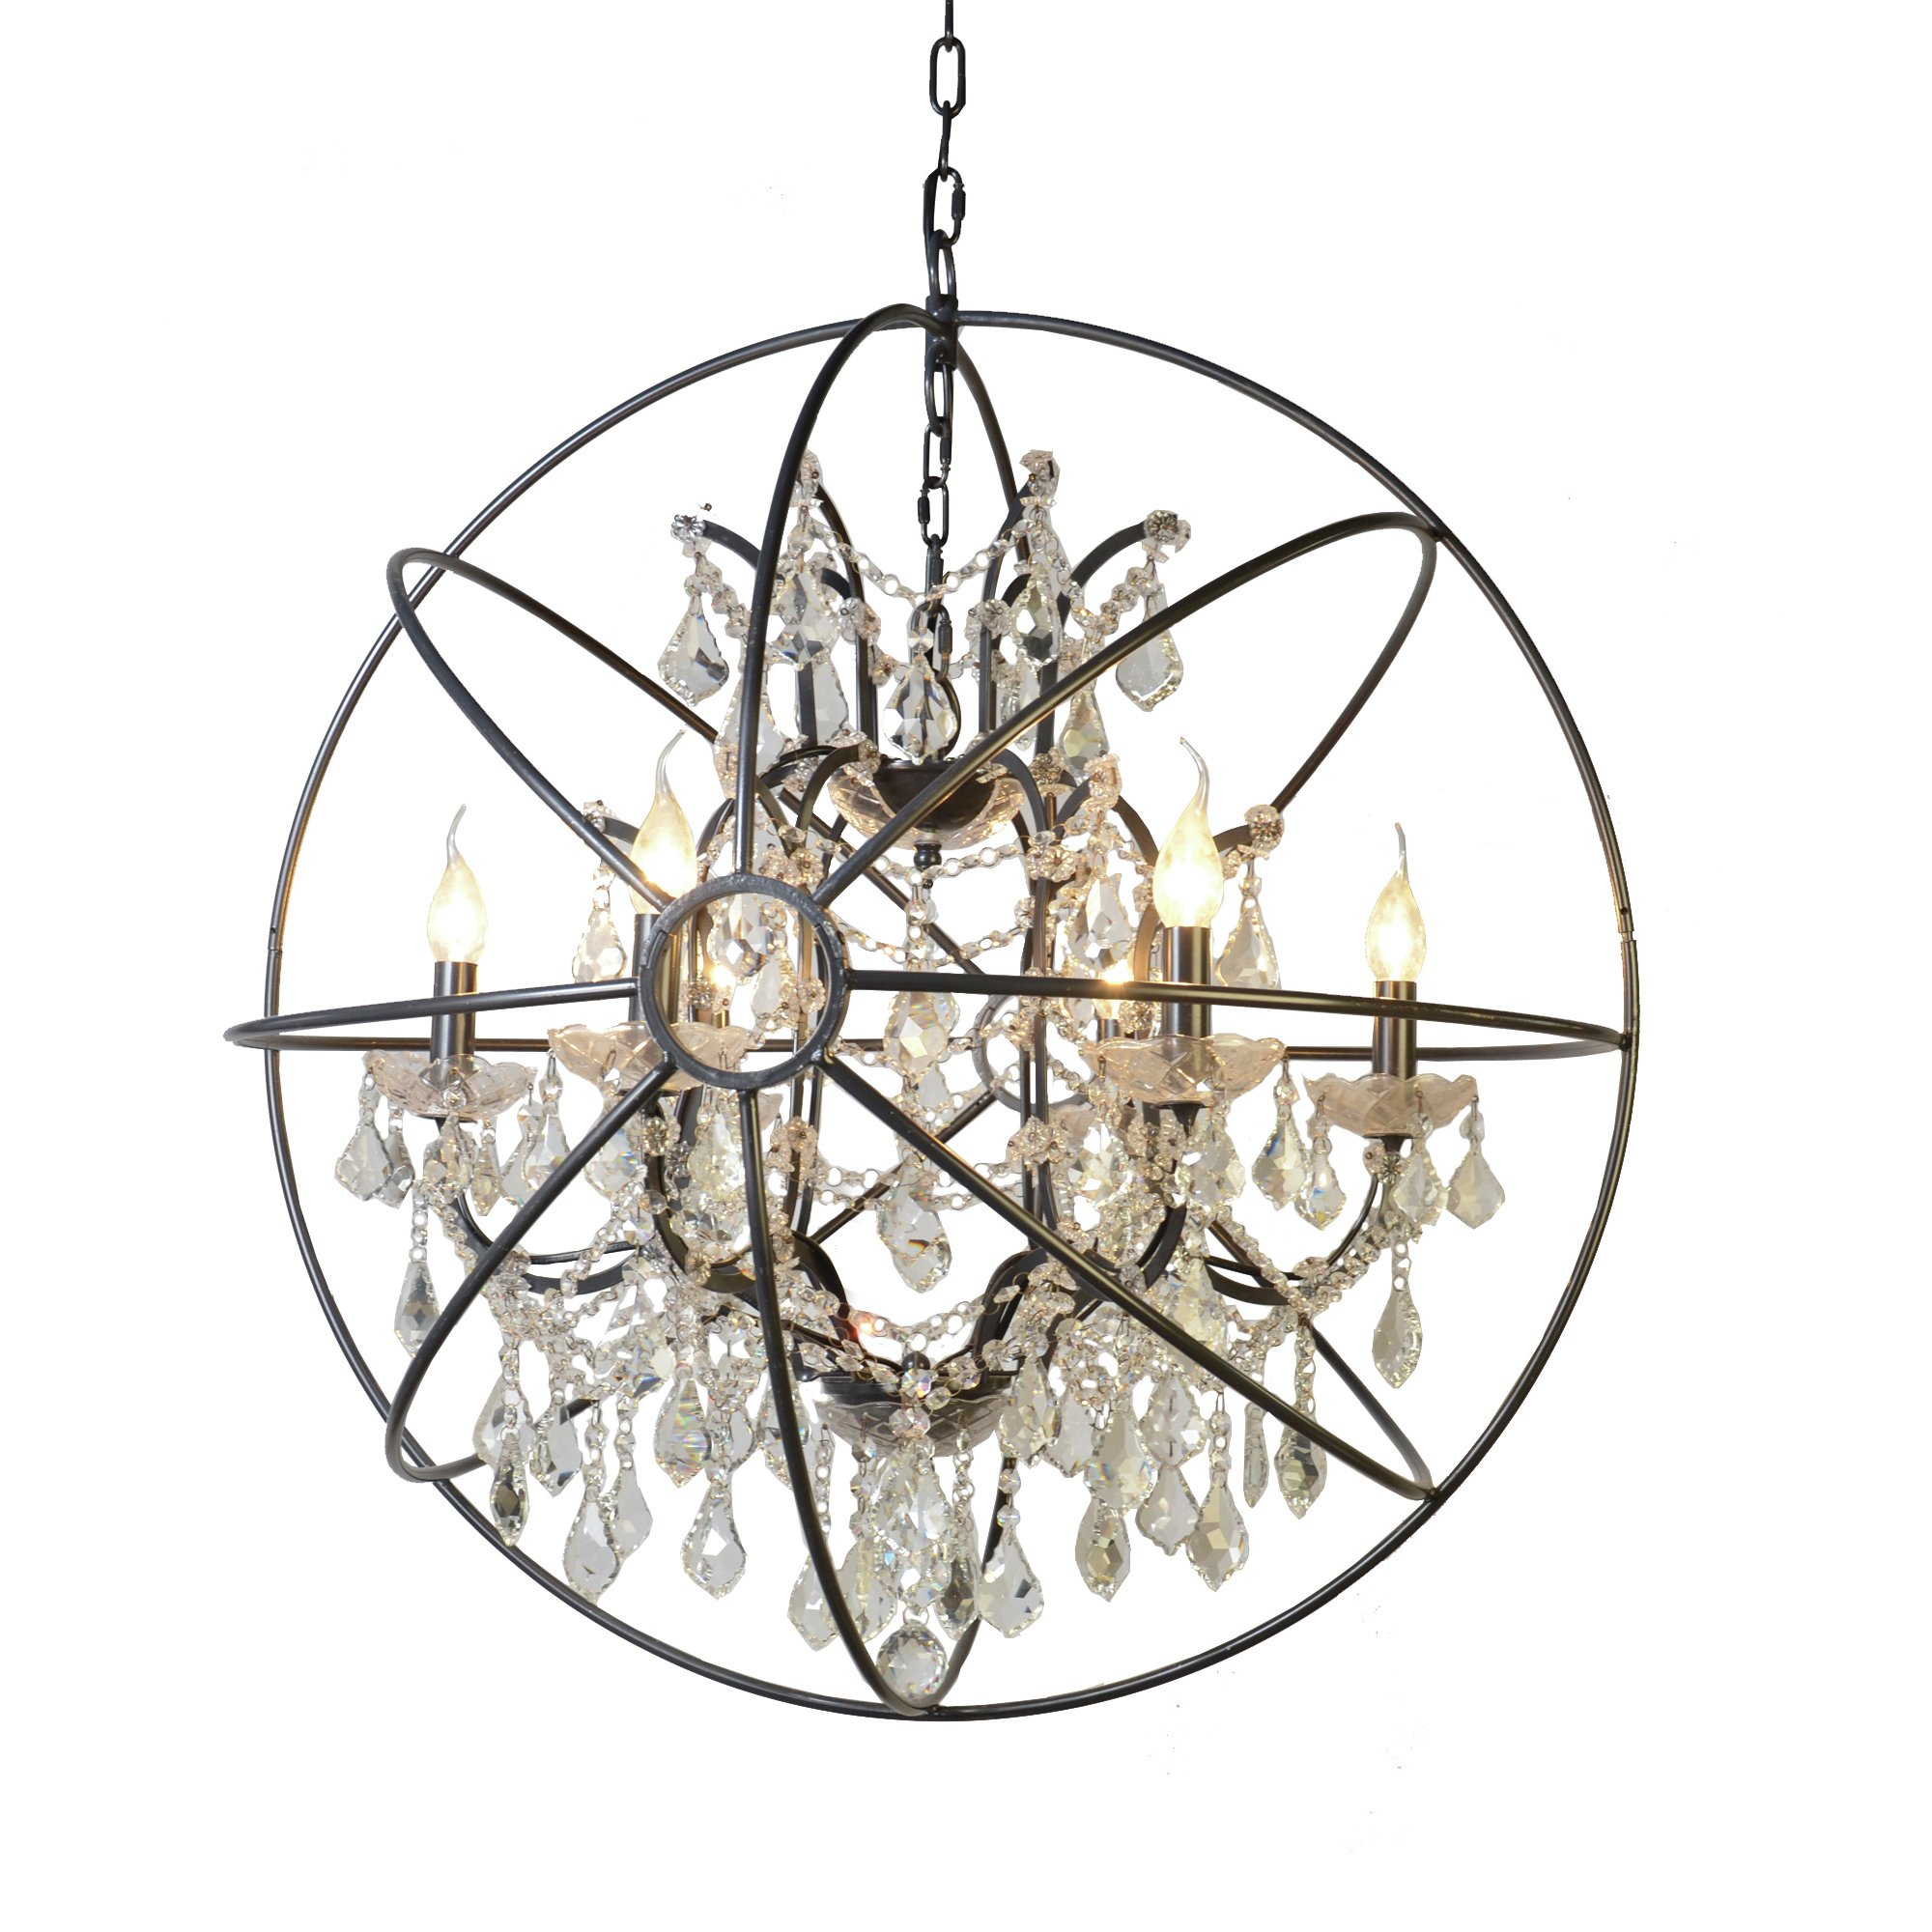 Cearbhall 6 Light Globe Chandelier For Alden 6 Light Globe Chandeliers (Image 9 of 30)